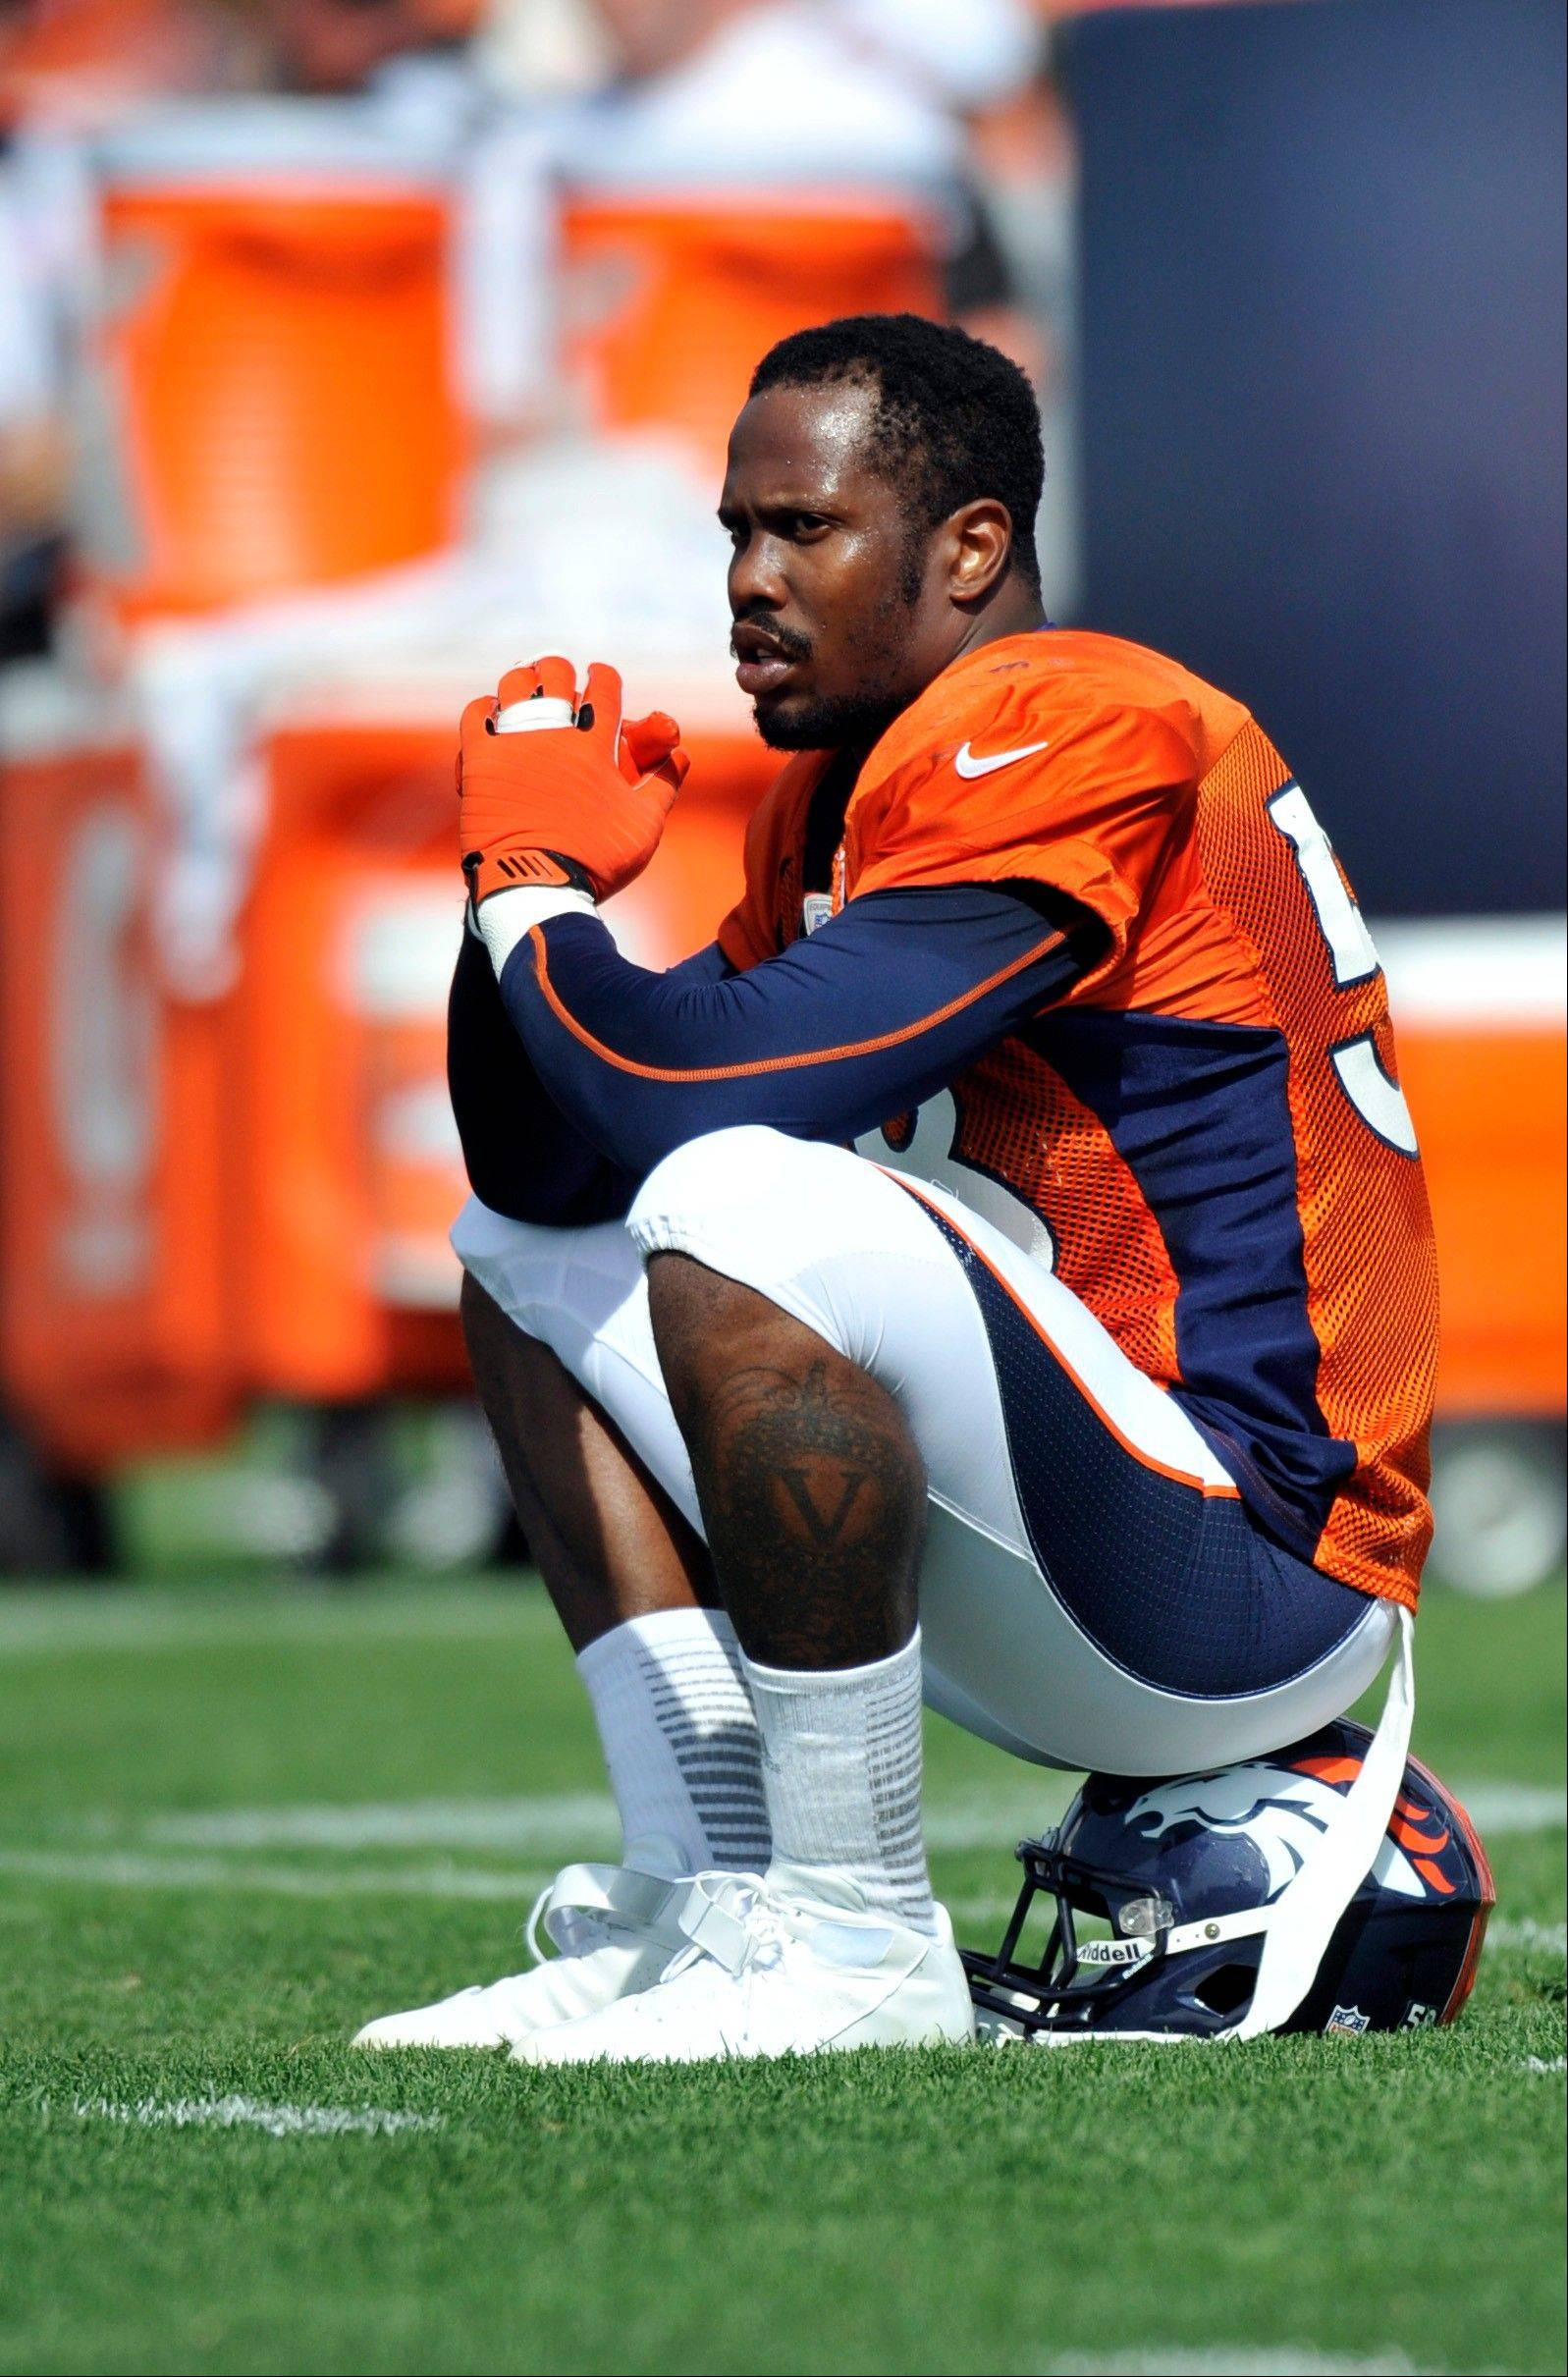 Denver Broncos linebacker Von Miller was suspended for the first six games for violating the league's drug policy.